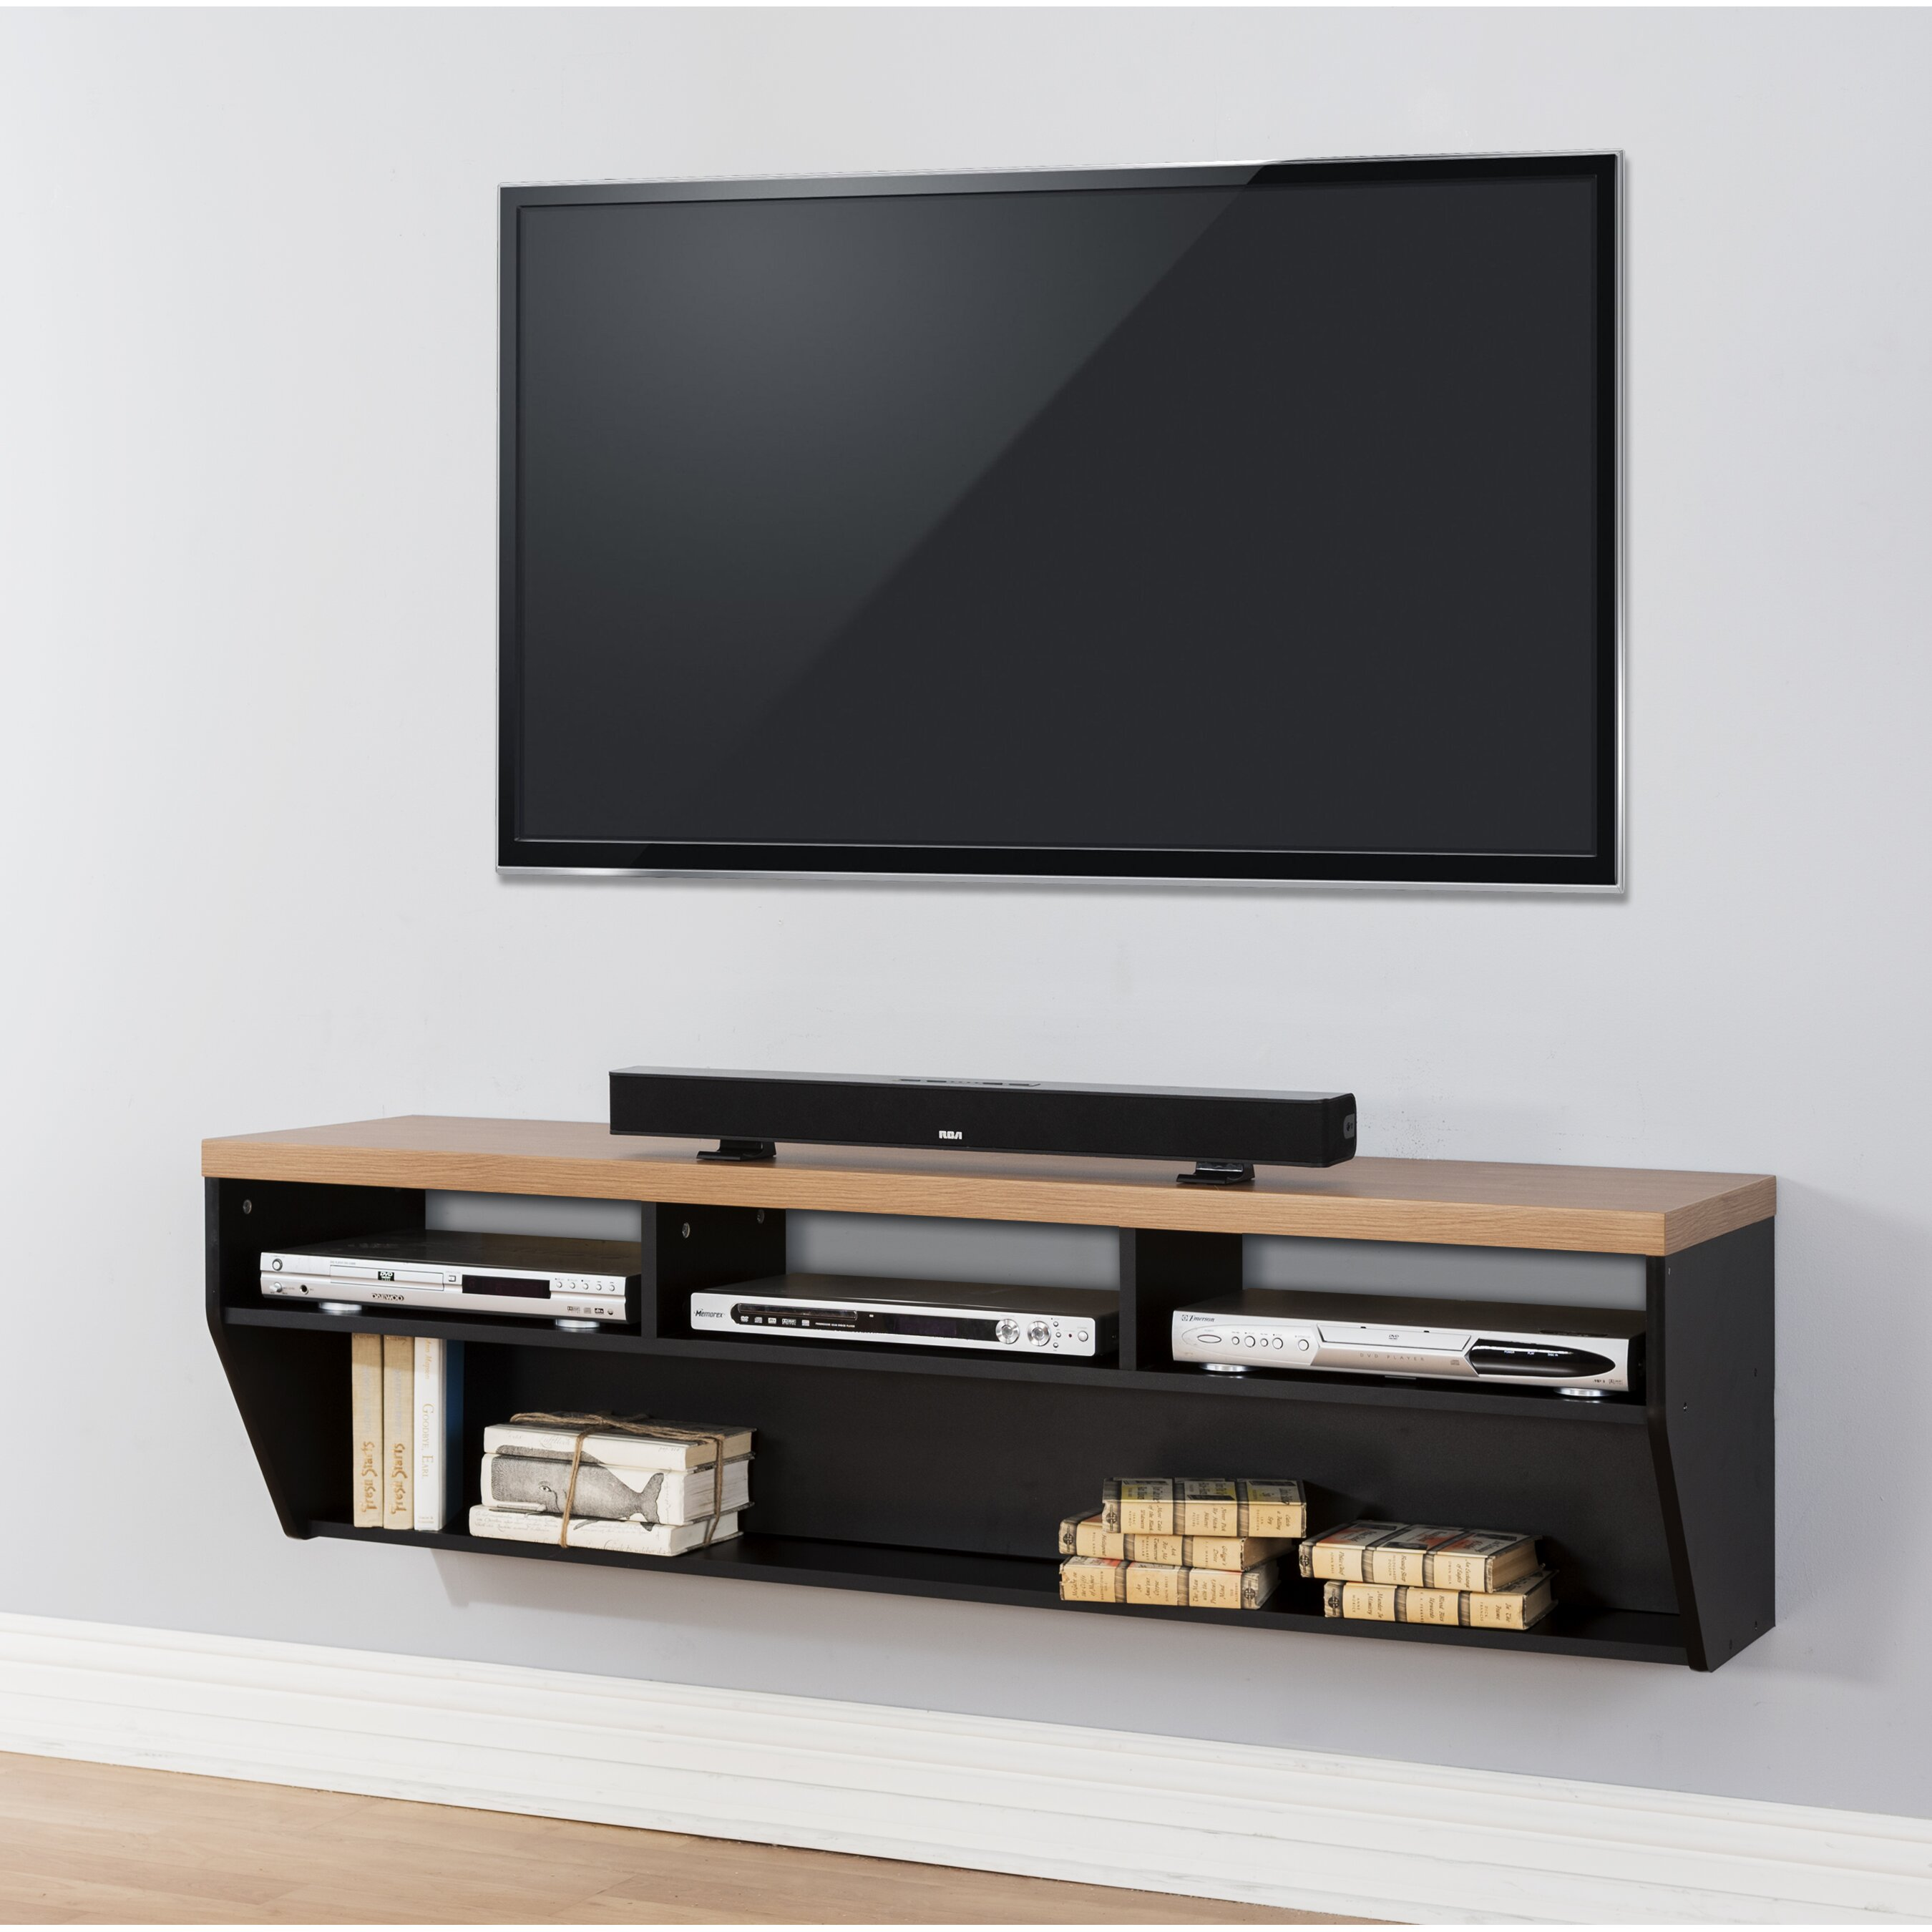 martin home furnishings 60 angled sides wall mounted tv. Black Bedroom Furniture Sets. Home Design Ideas